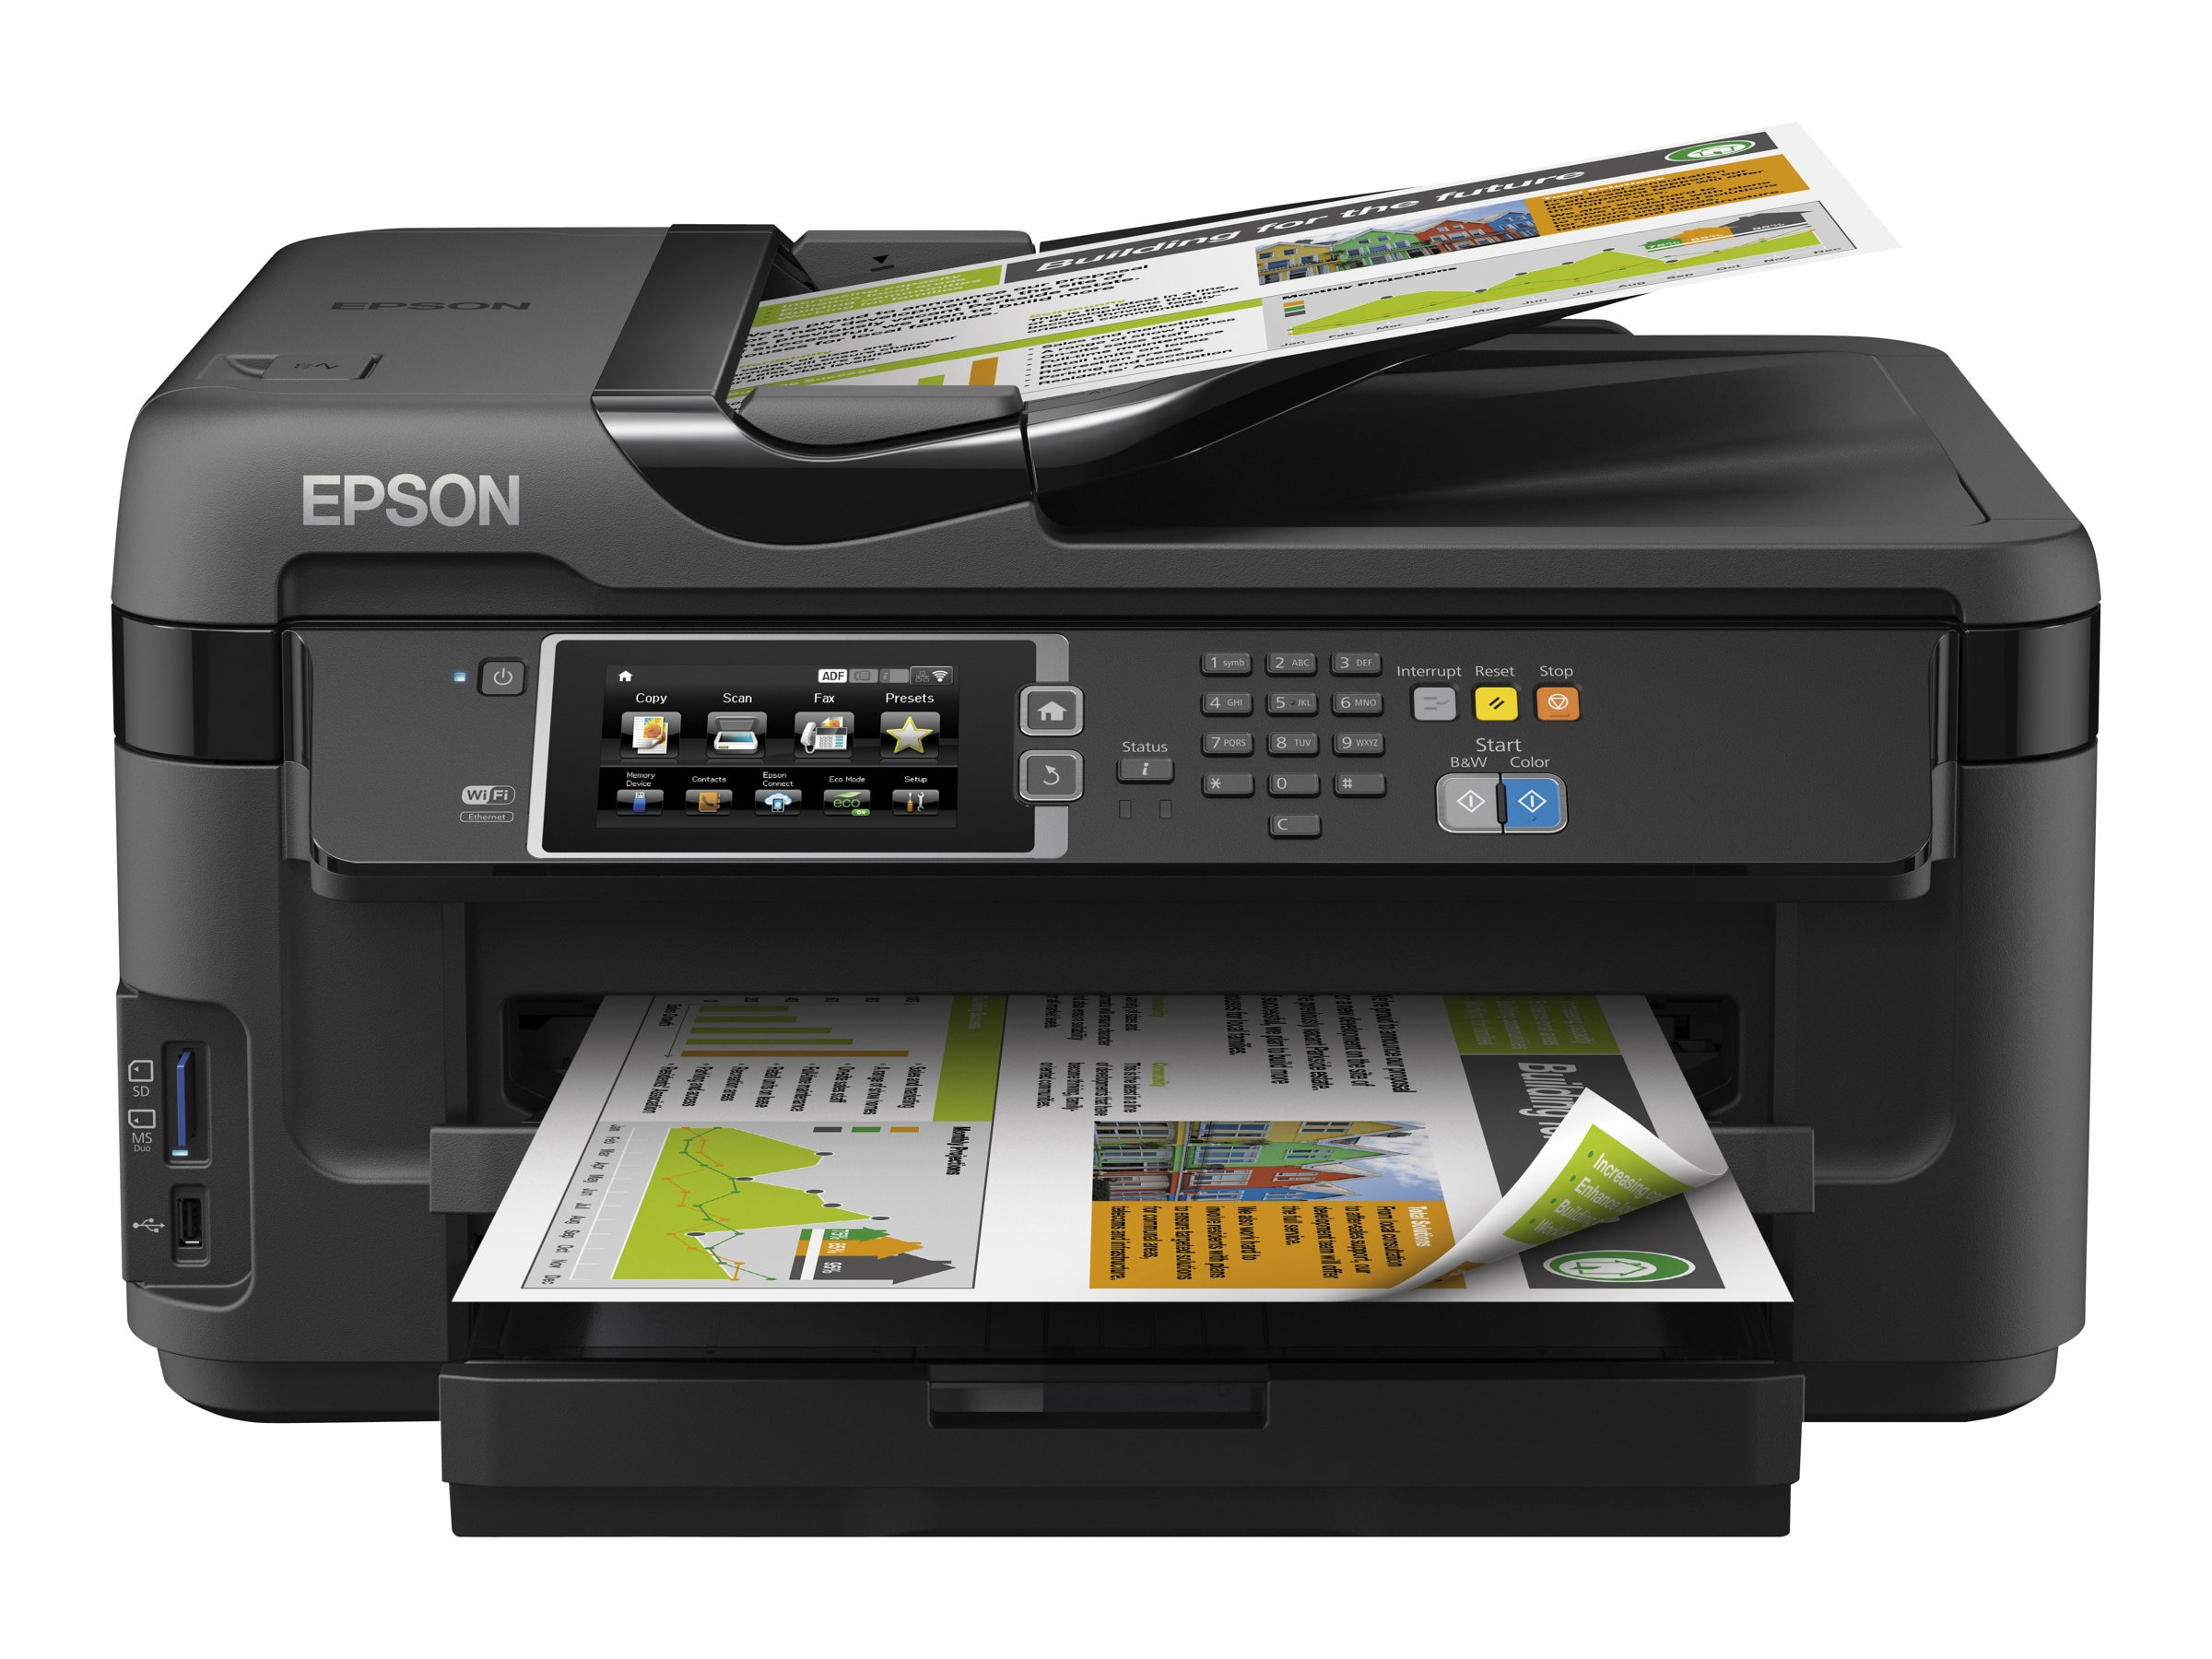 Epson WorkForce WF-7610 All-In-One Printer - $249.99 less instant rebate of $48.00, C11CC98201, 17456709, MultiFunction - Ink-Jet